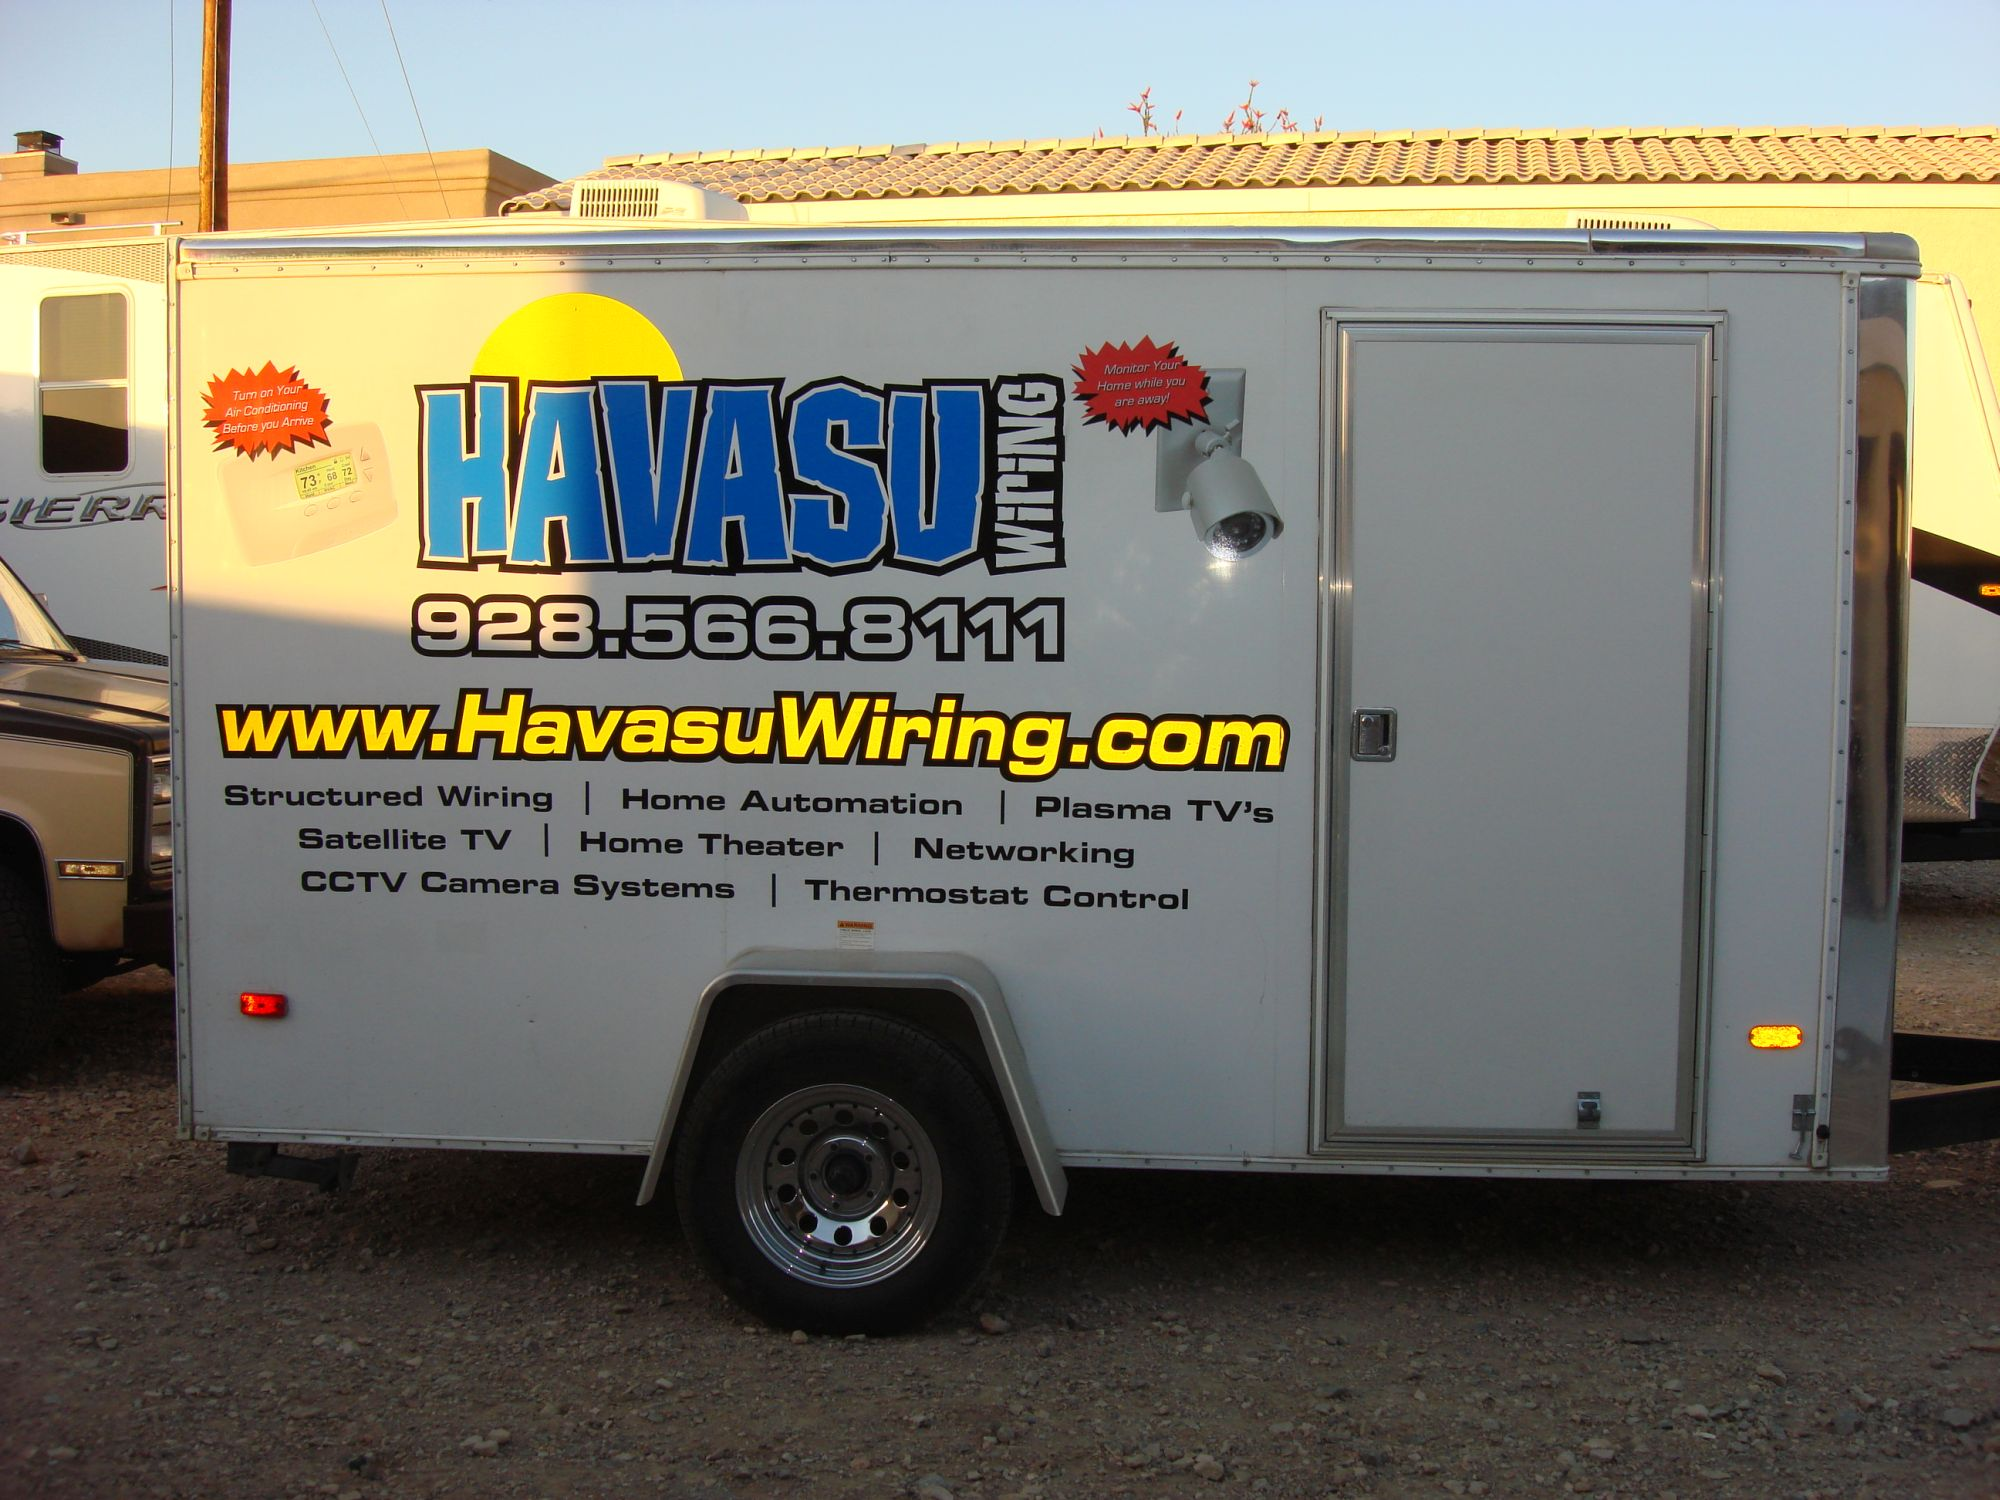 Havasu Wiring Smart Homes Sound Security Cameras And All For New Was Started In 2006 Our Team Has Been The Audio Video Telecom Business Since 1995 We Have Worked Every Position From Grunt Installer To